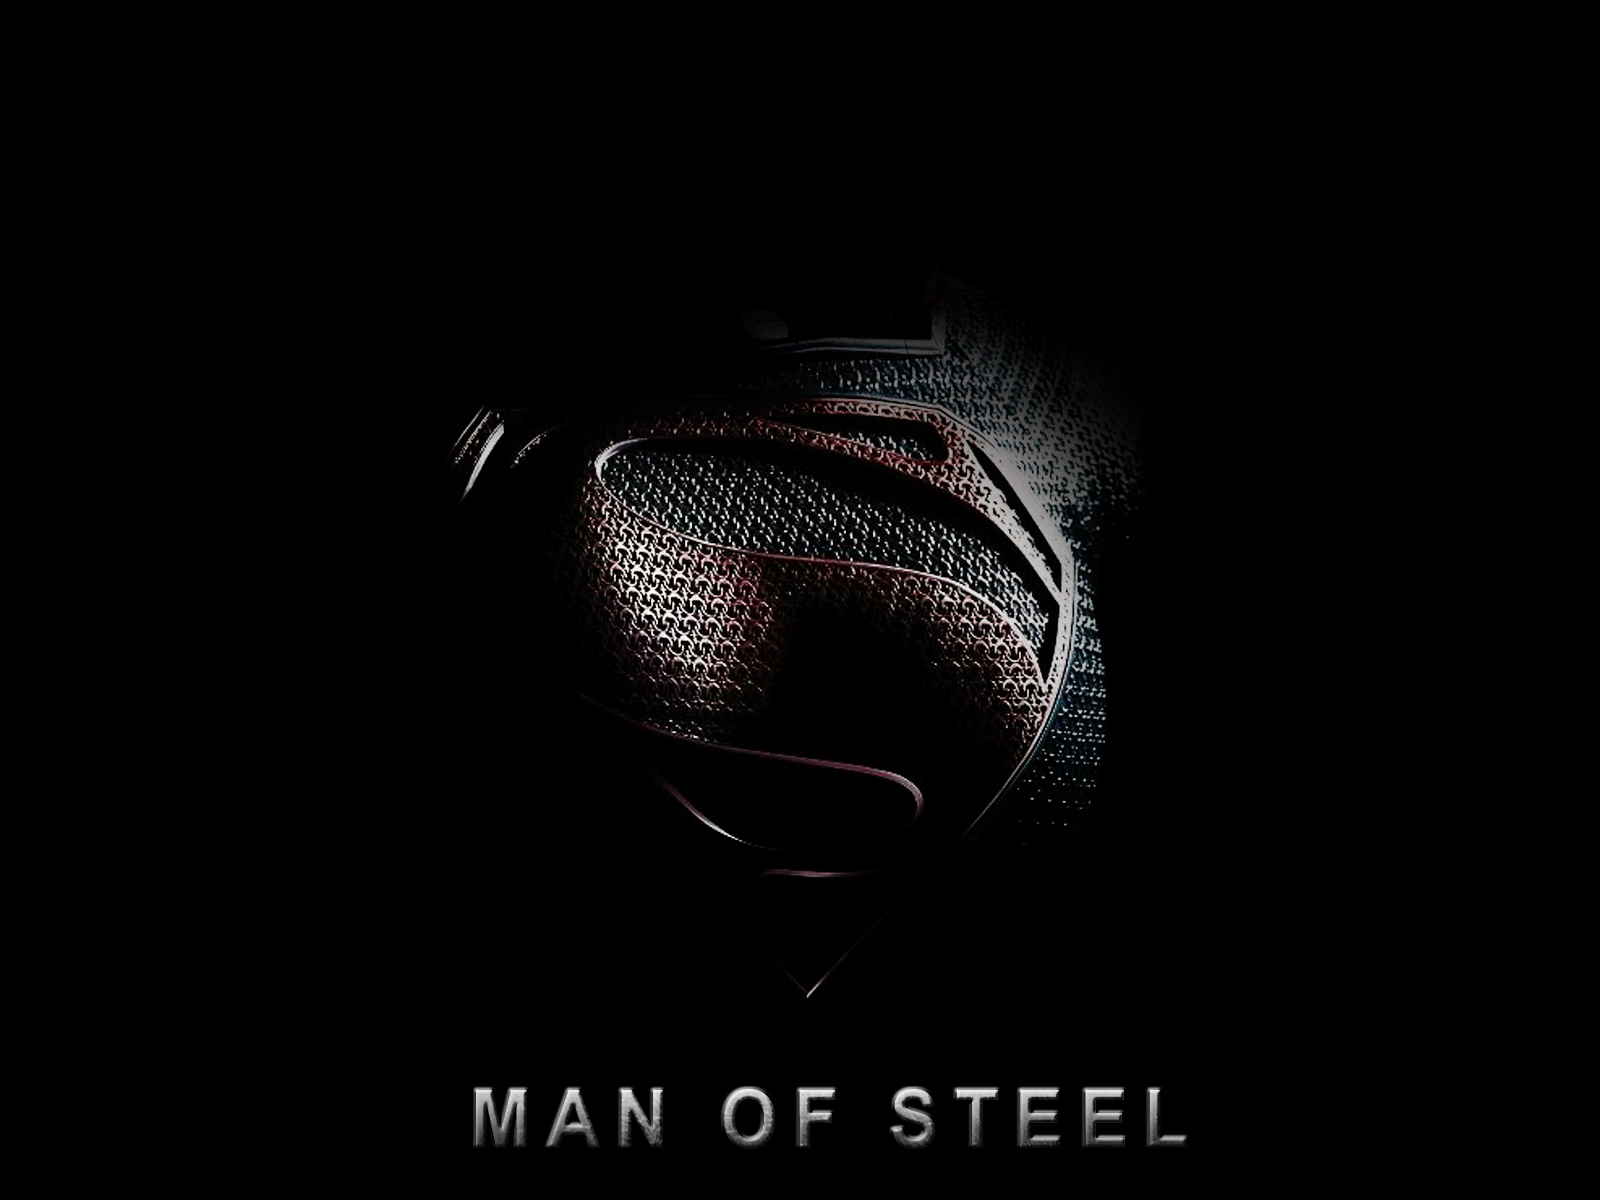 Free Download Man Of Steel Superman 2013 Hd Wallpapers Download